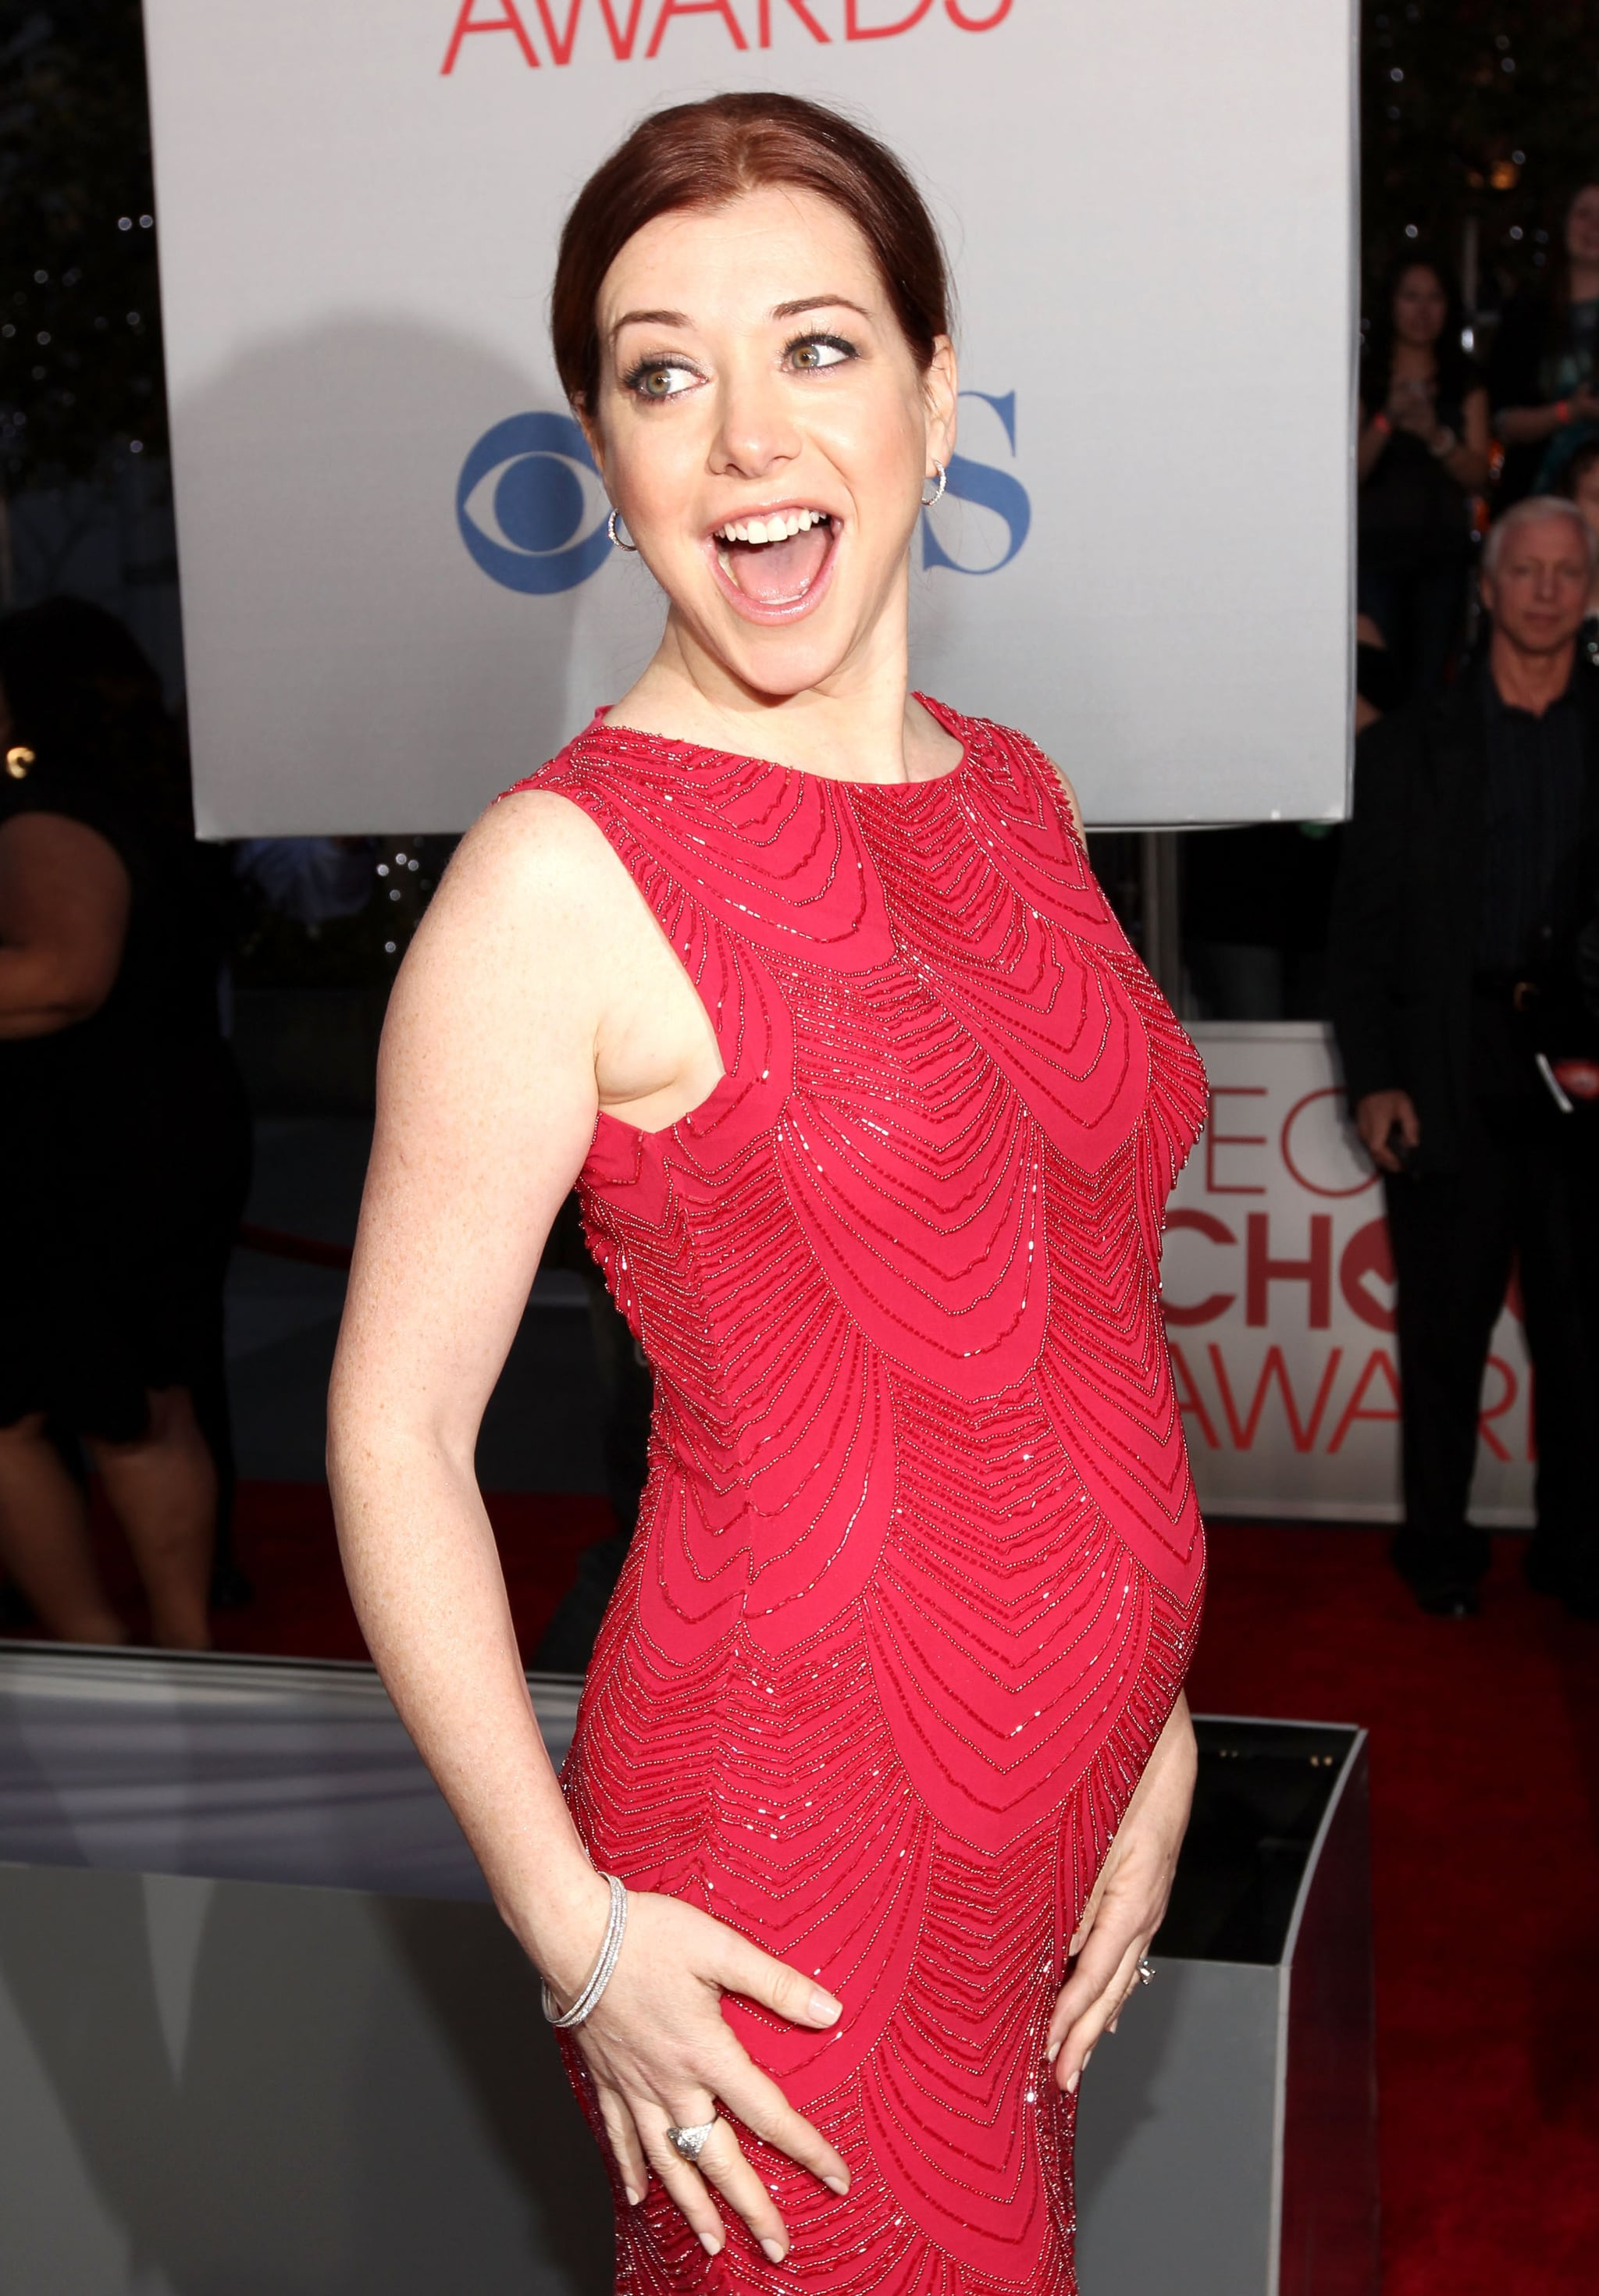 Pregnant Alyson Hannigan in a red dress.